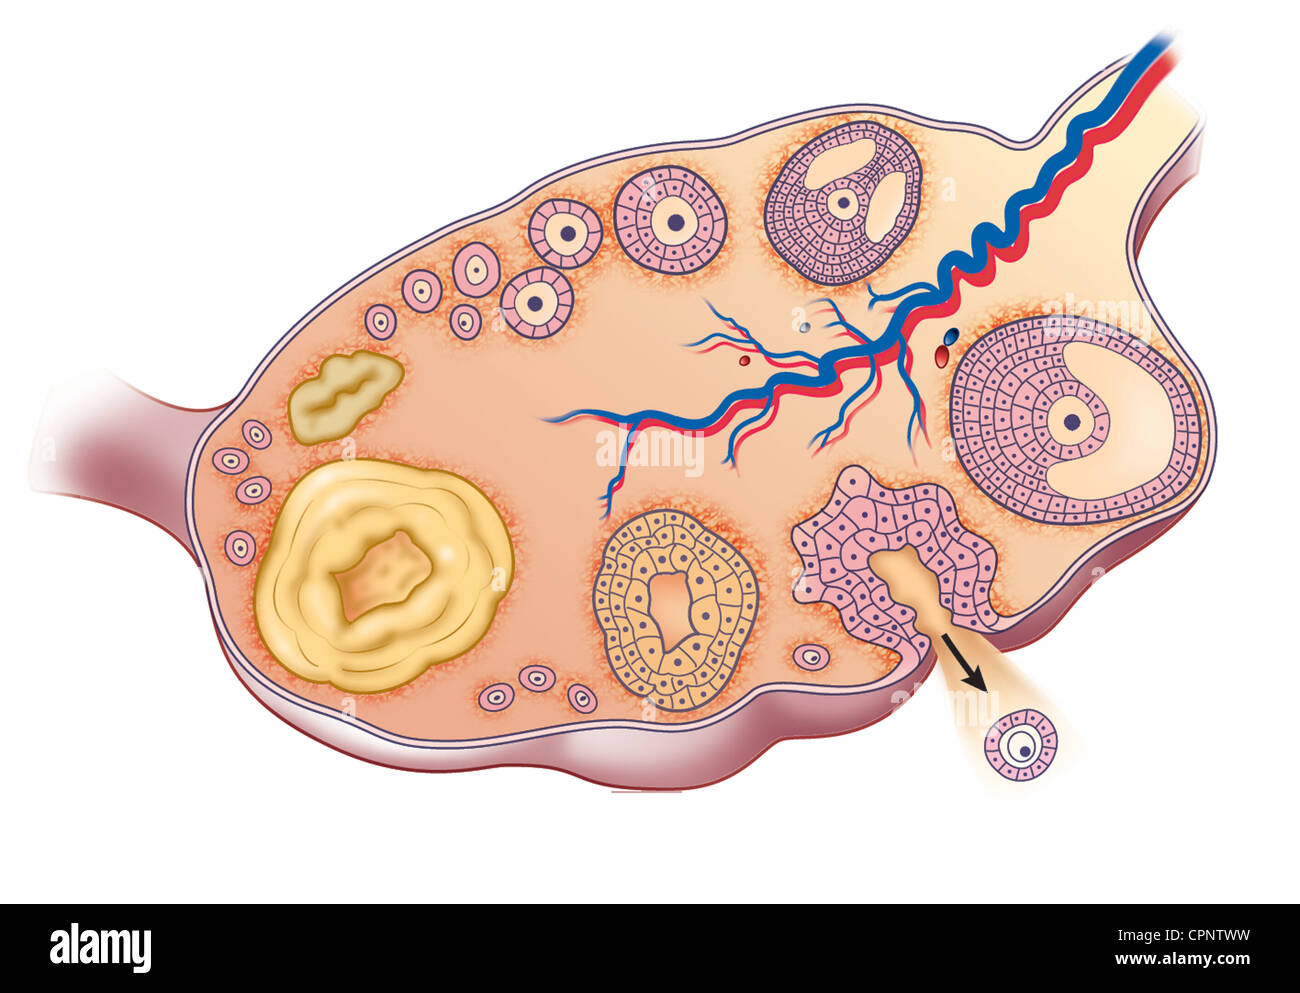 OVARIAN CYCLE, DRAWING - Stock Image